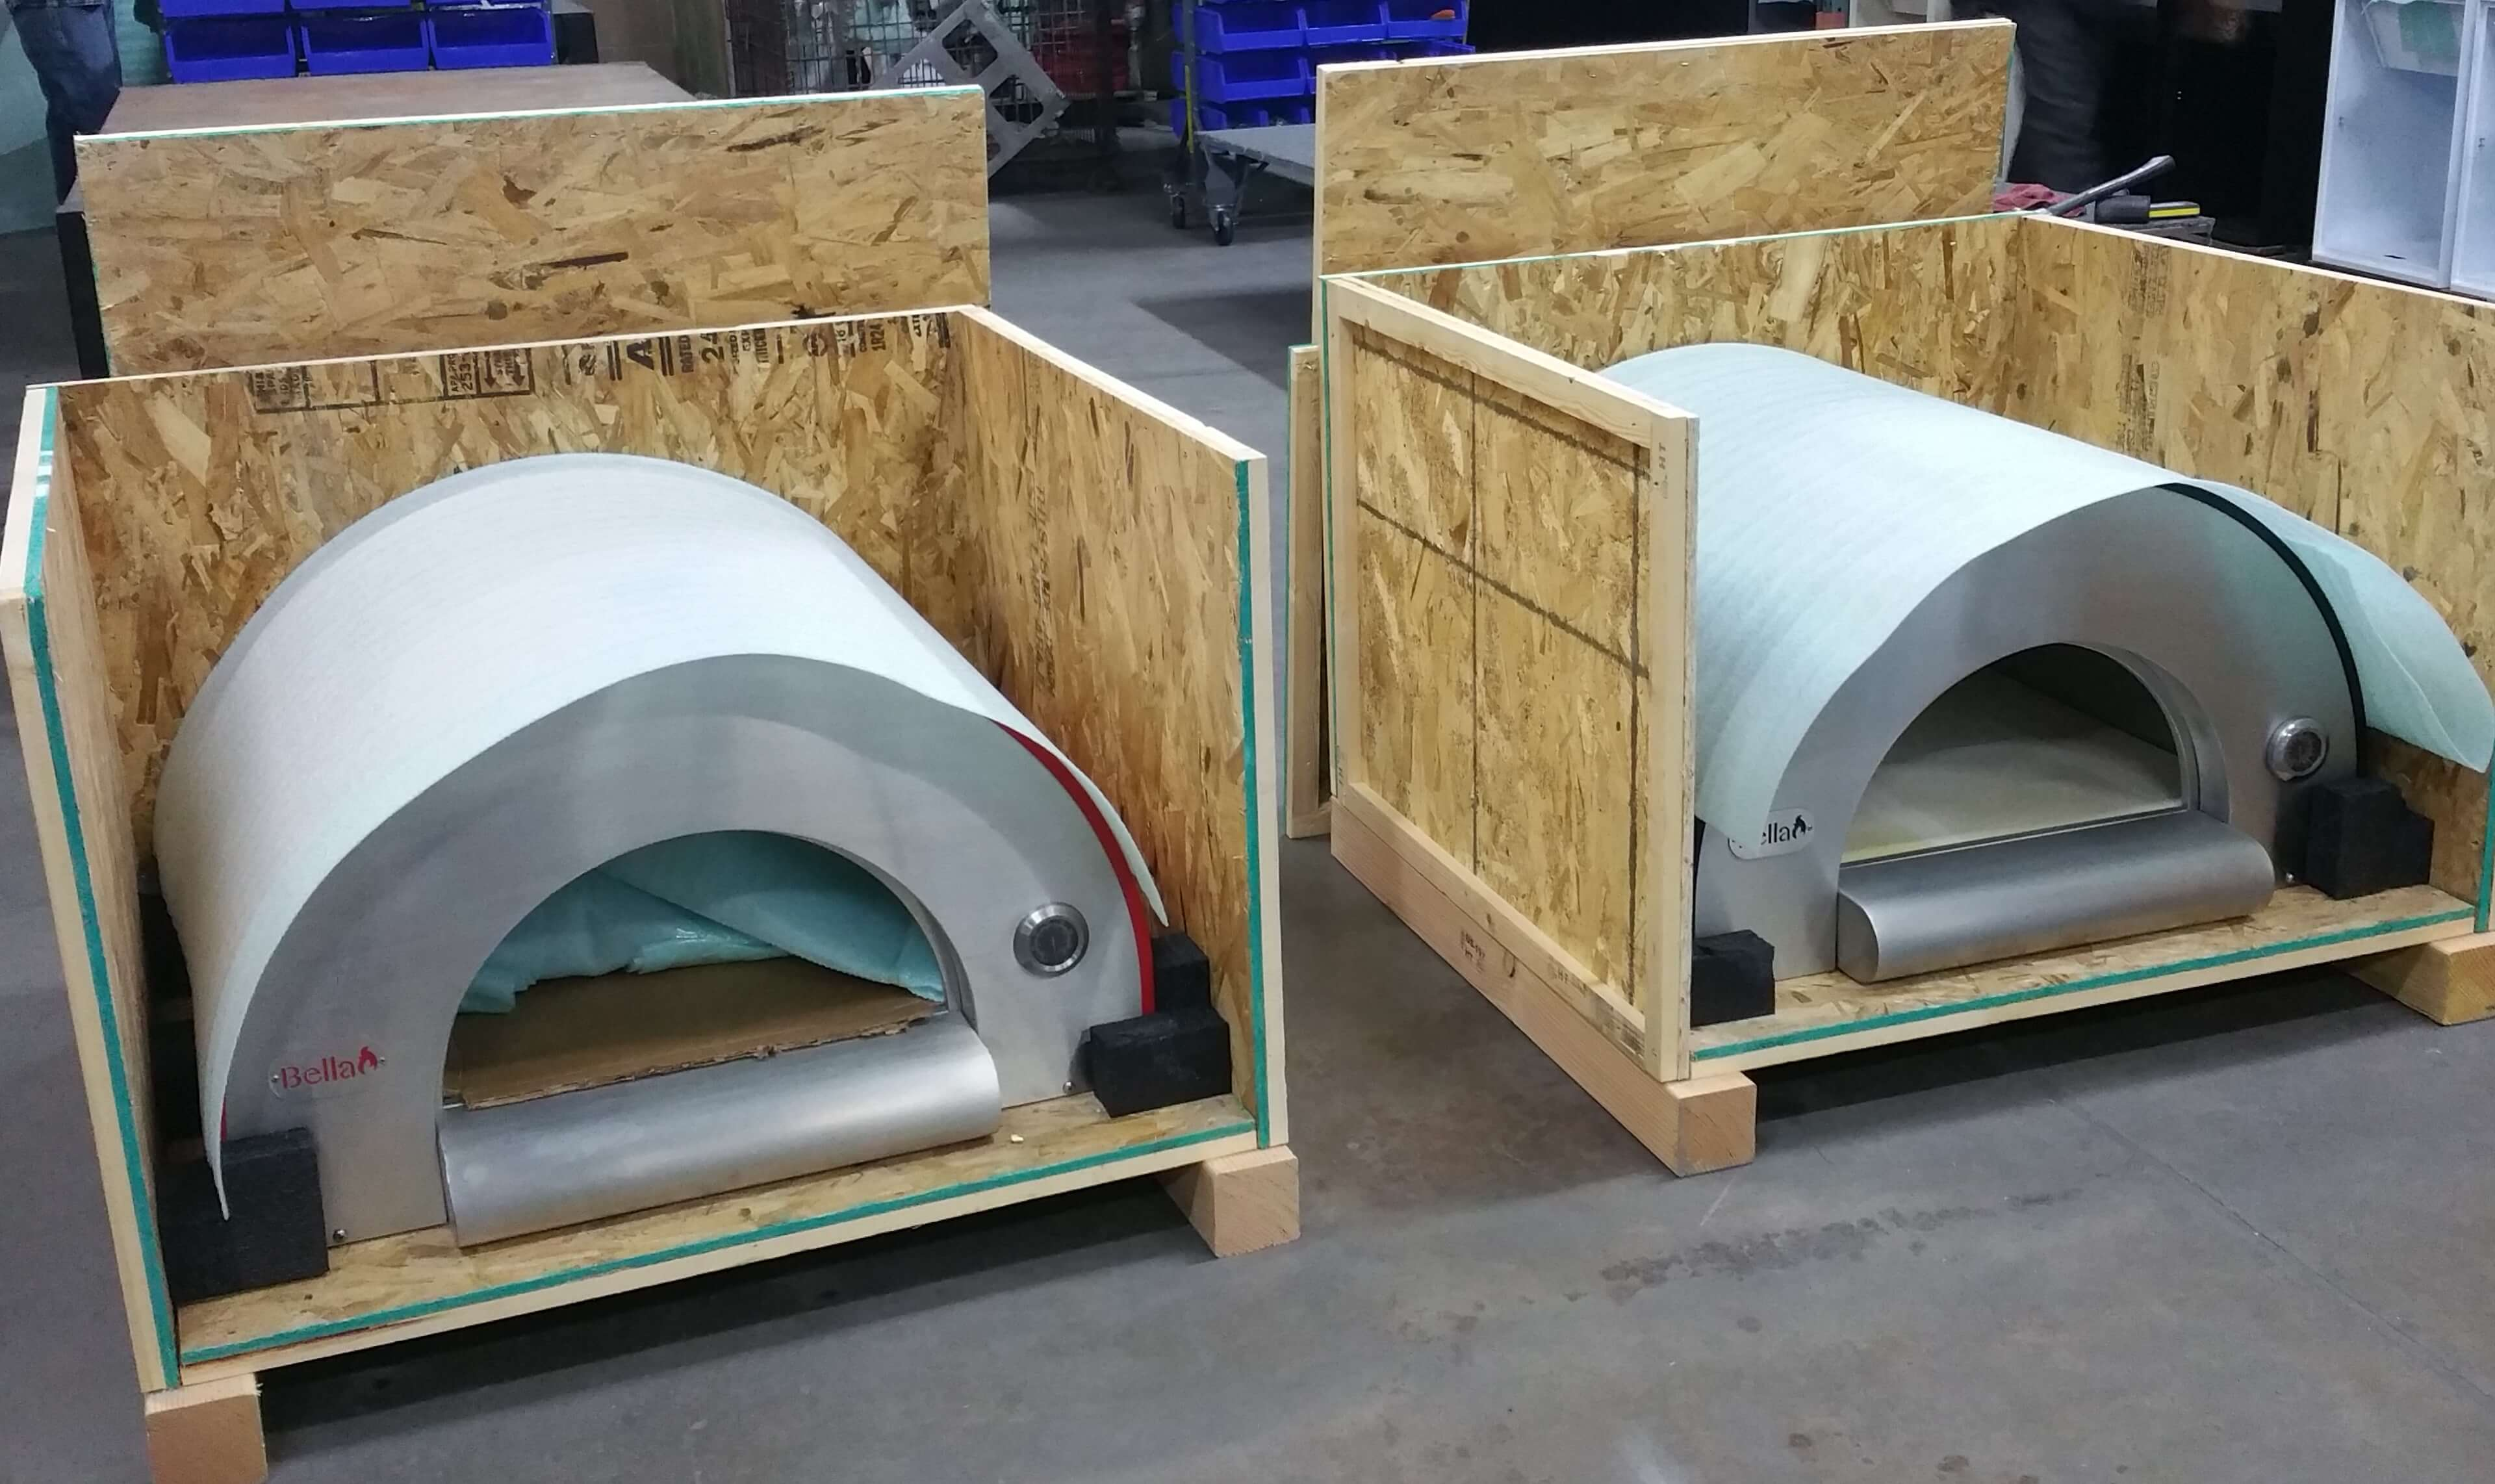 Two Bella Pizza Ovens in Open Crates